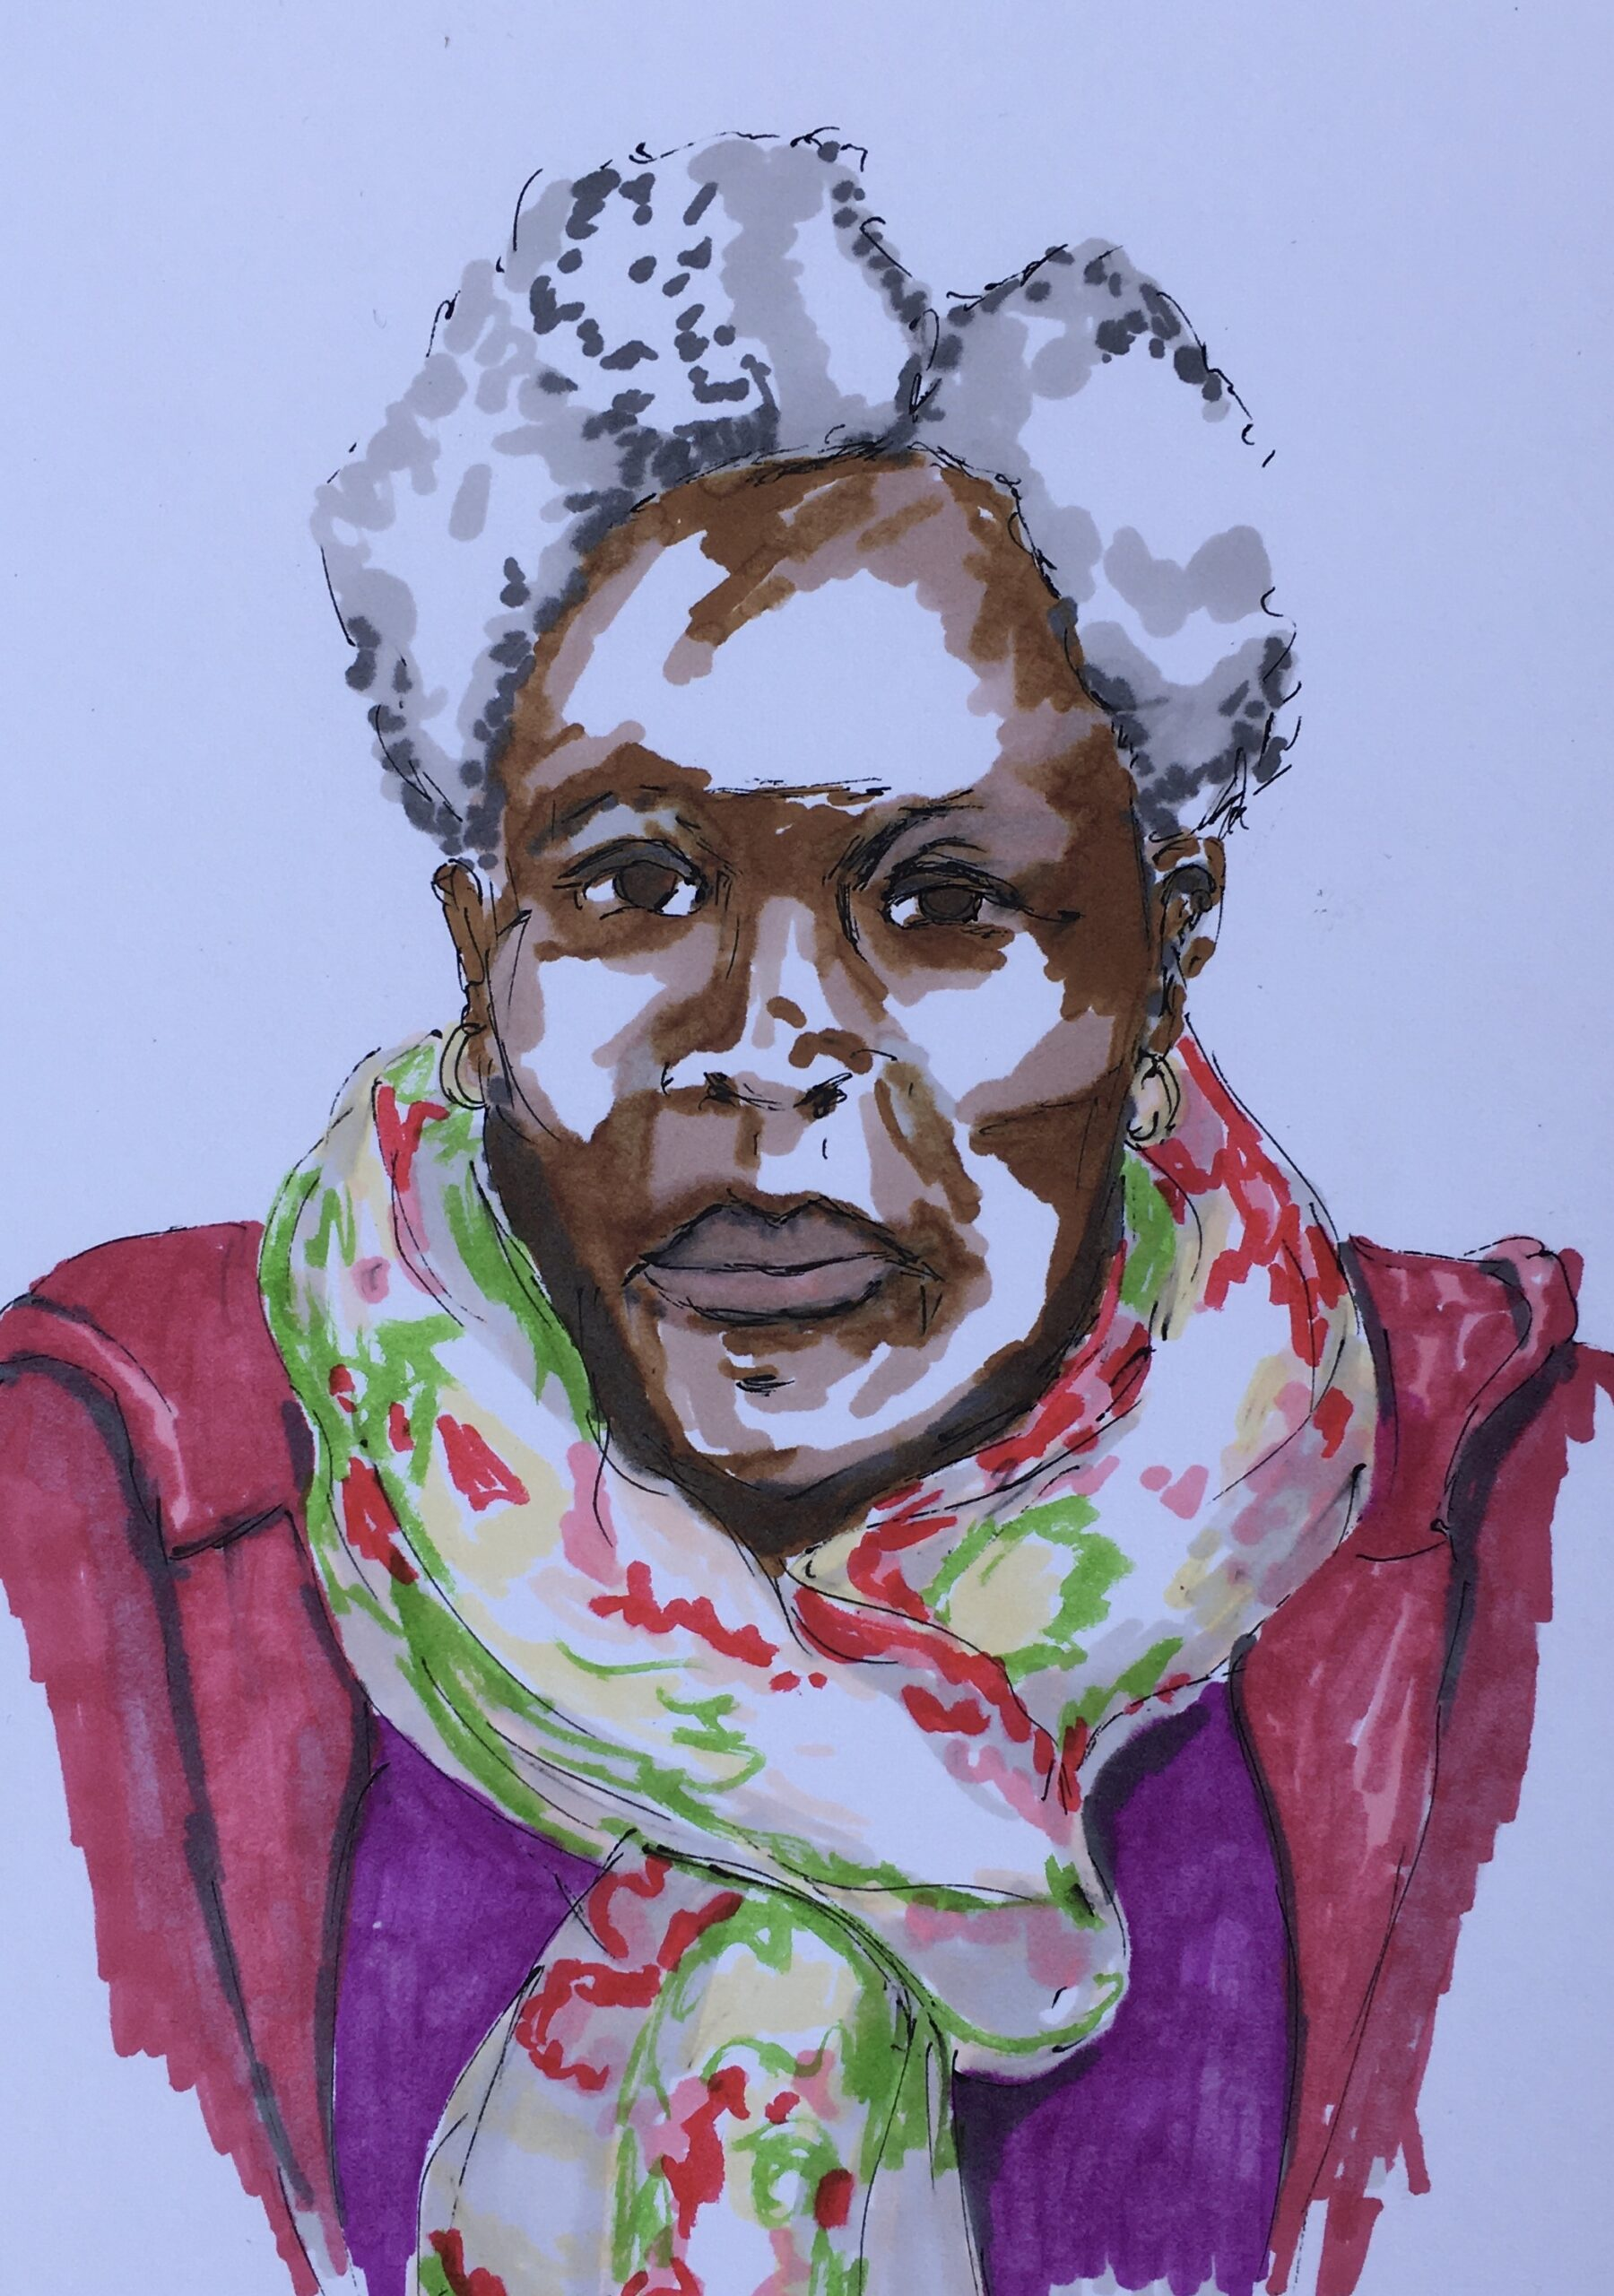 Picture shows an ink drawing of an older black woman with grey hair, she is wearing a brightly coloured scarf, purple top and pinkish red jacket.